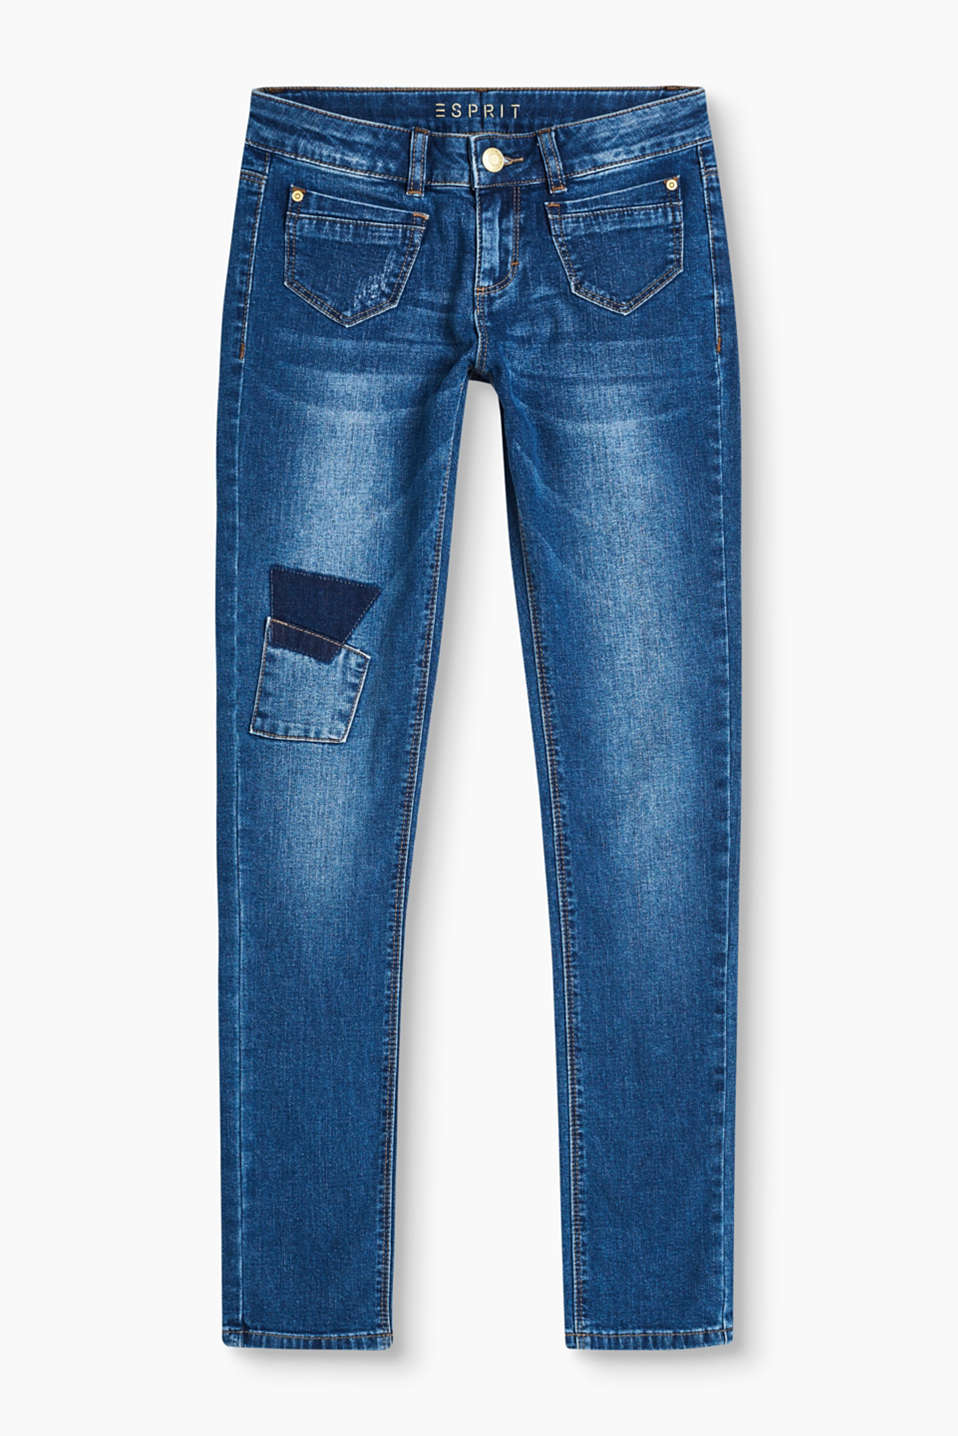 Jeans in blended cotton denim with added stretch featuring patch pockets at the front and back